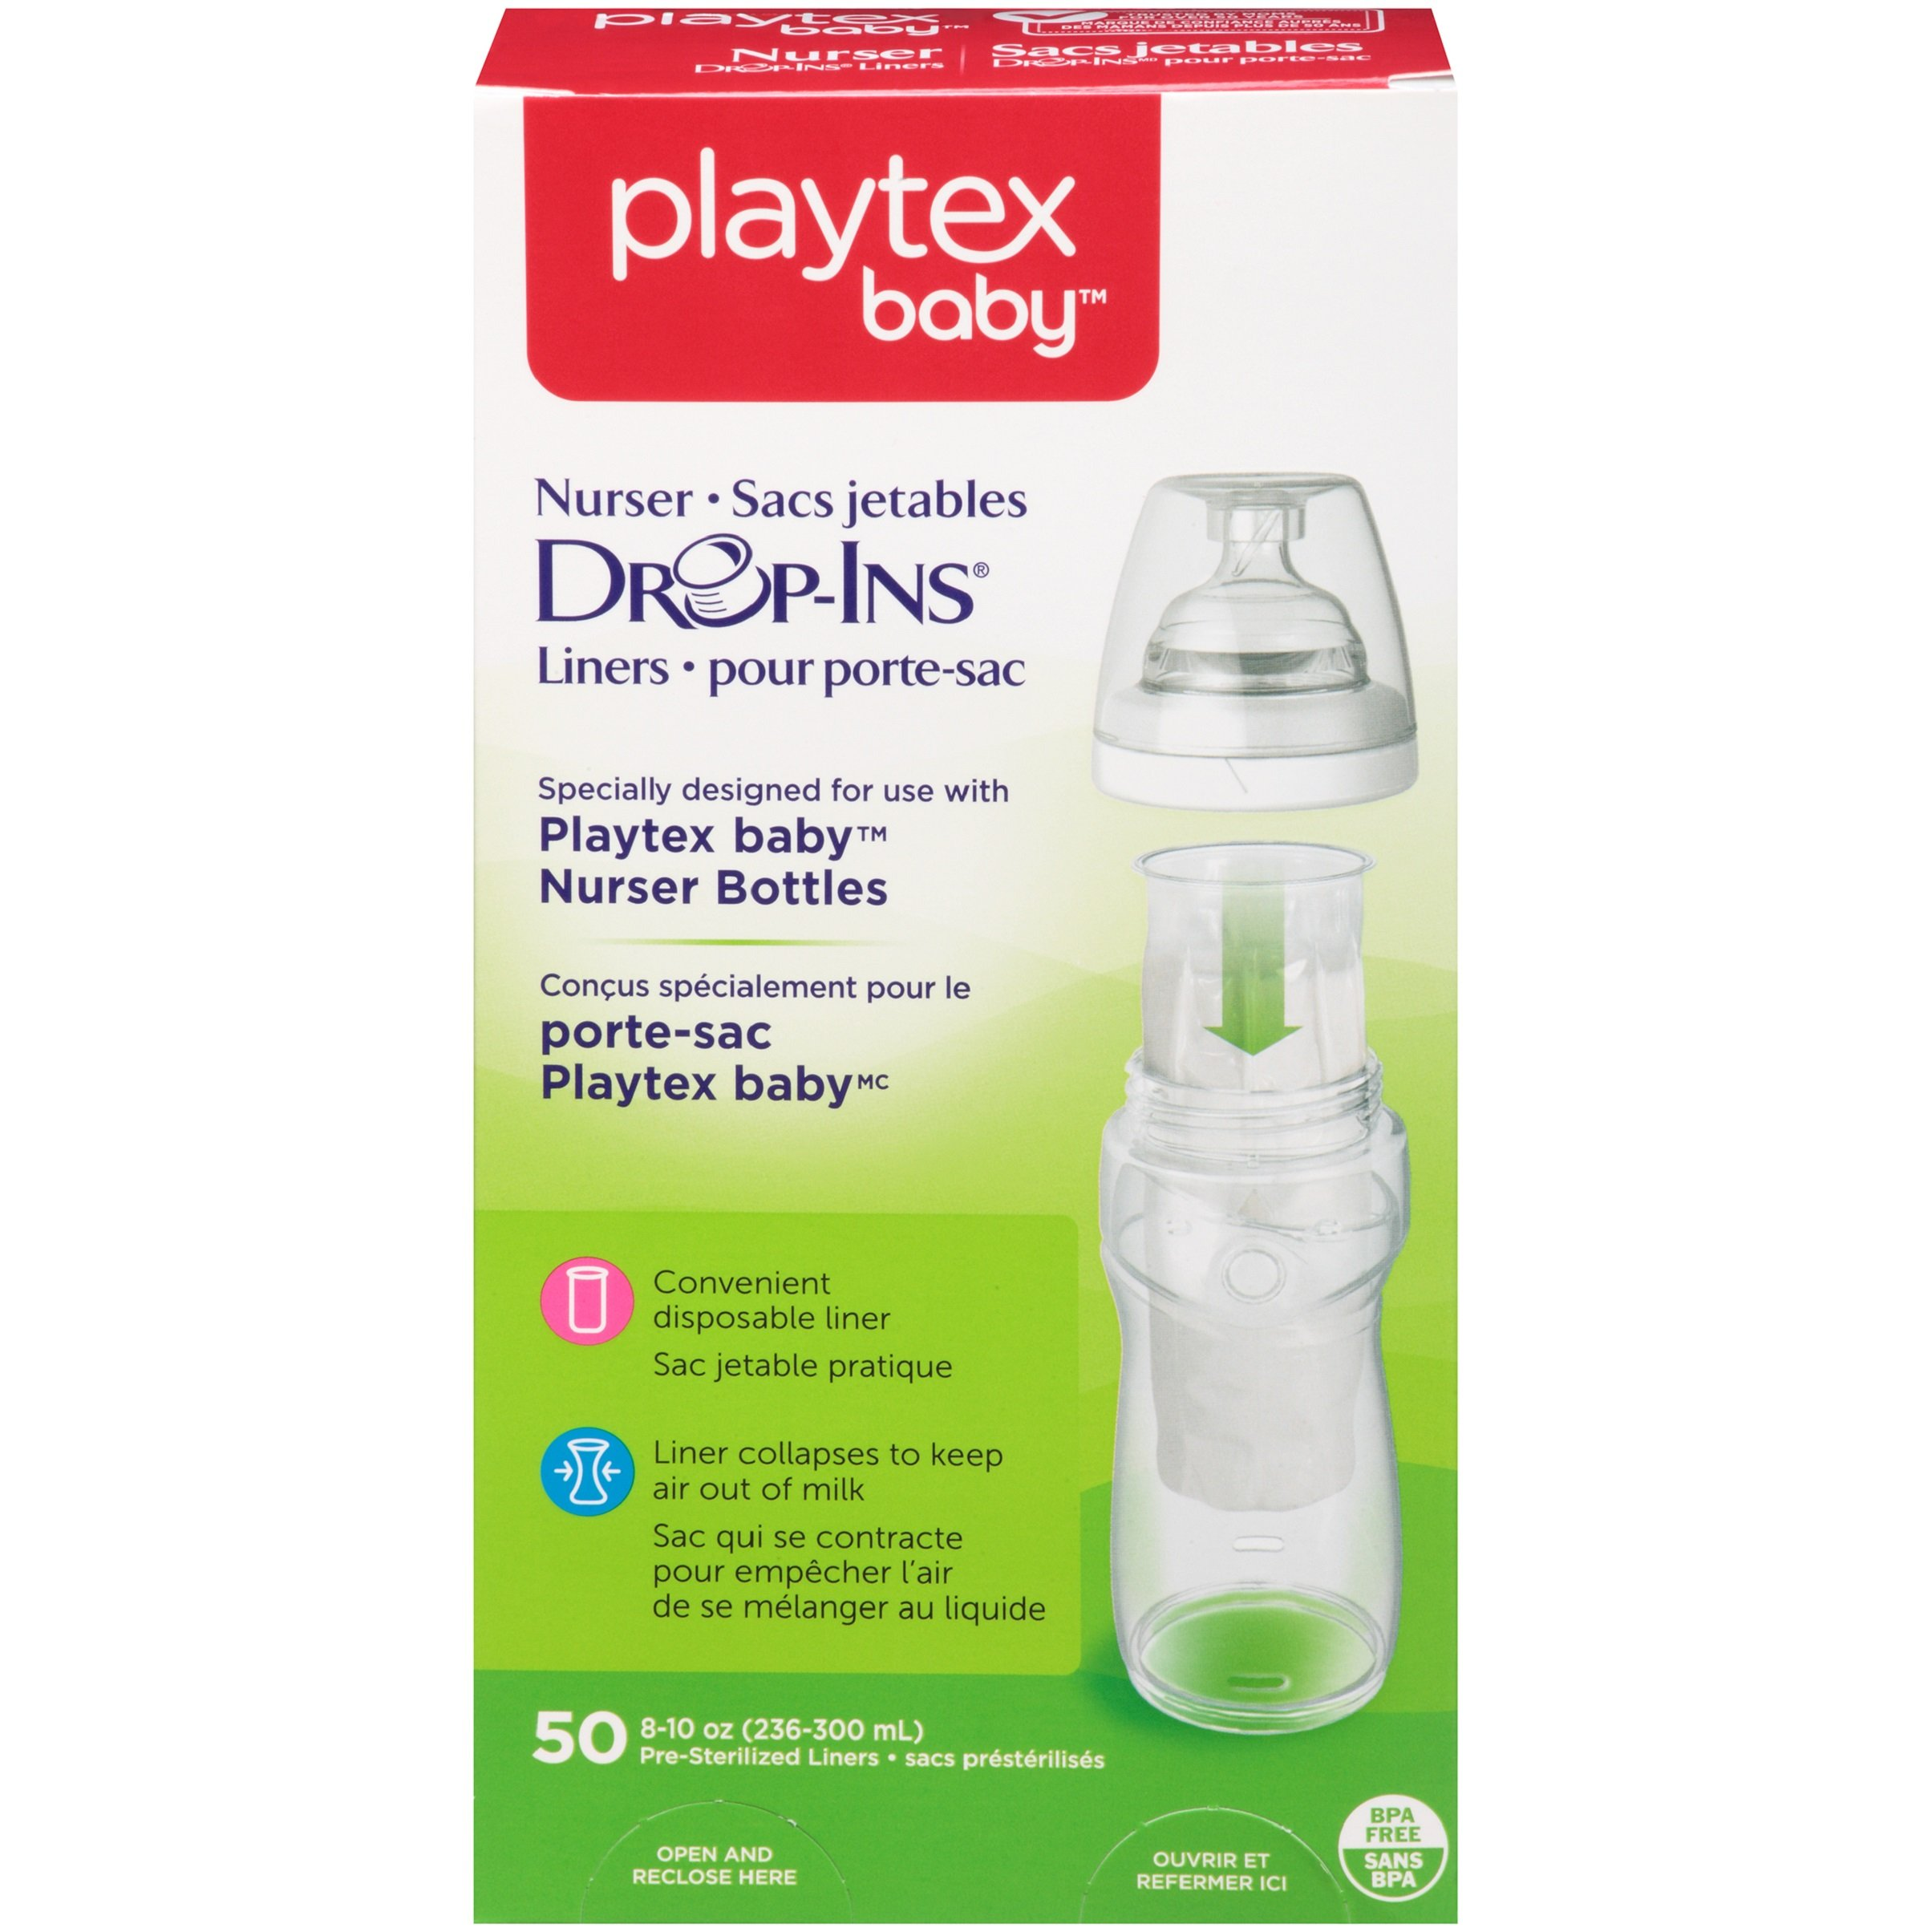 Playtex Baby Nurser Drop-Ins Baby Bottle Disposable Liners, Closer to Breastfeeding, 8 Ounce - 50 Count